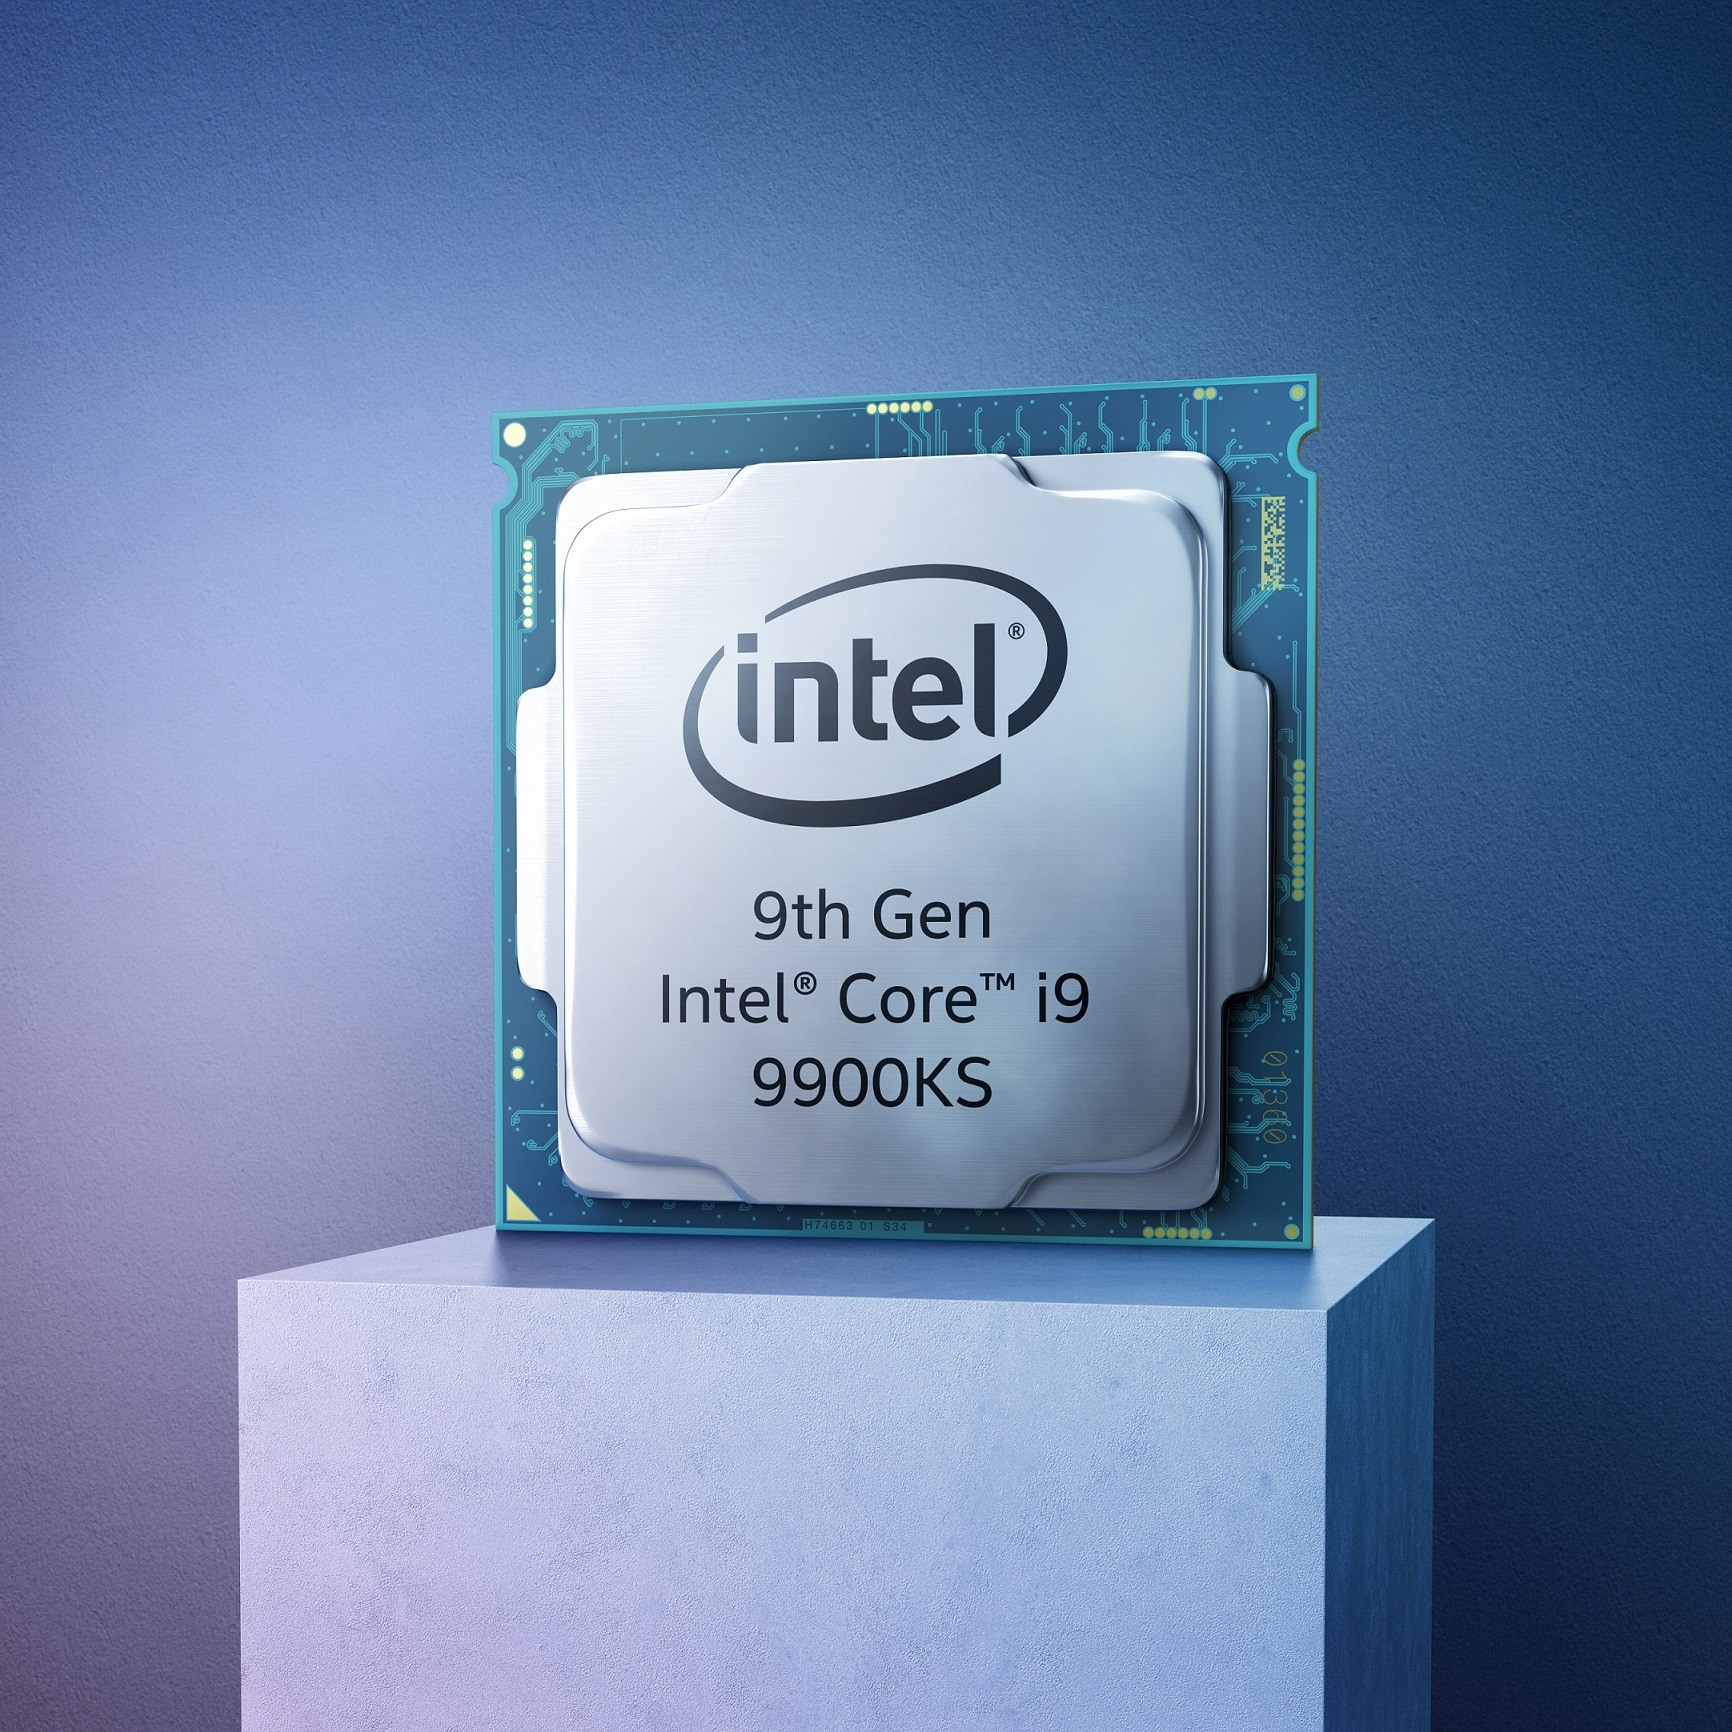 191029_9th Gen Intel Core i9-9900KS Special Edition Processor Available Oct 30th_Contents_3